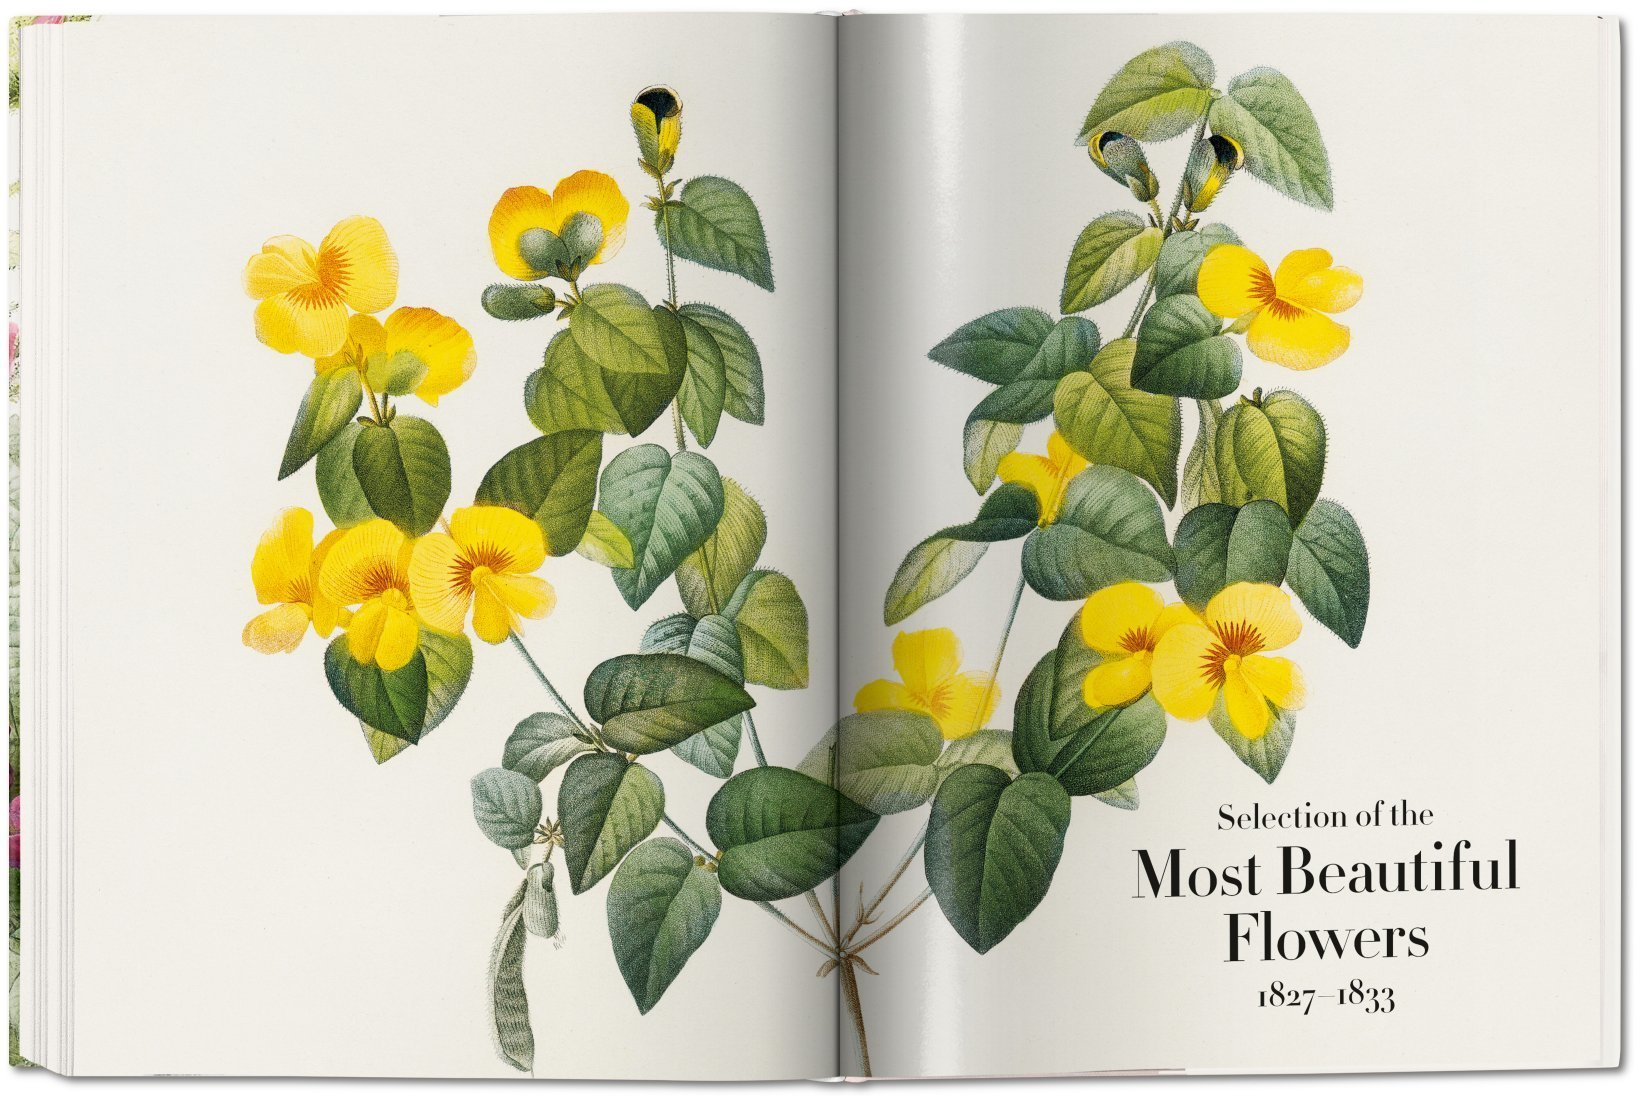 Pierre joseph redout the book of flowers taschen books the book of flowers image 7 izmirmasajfo